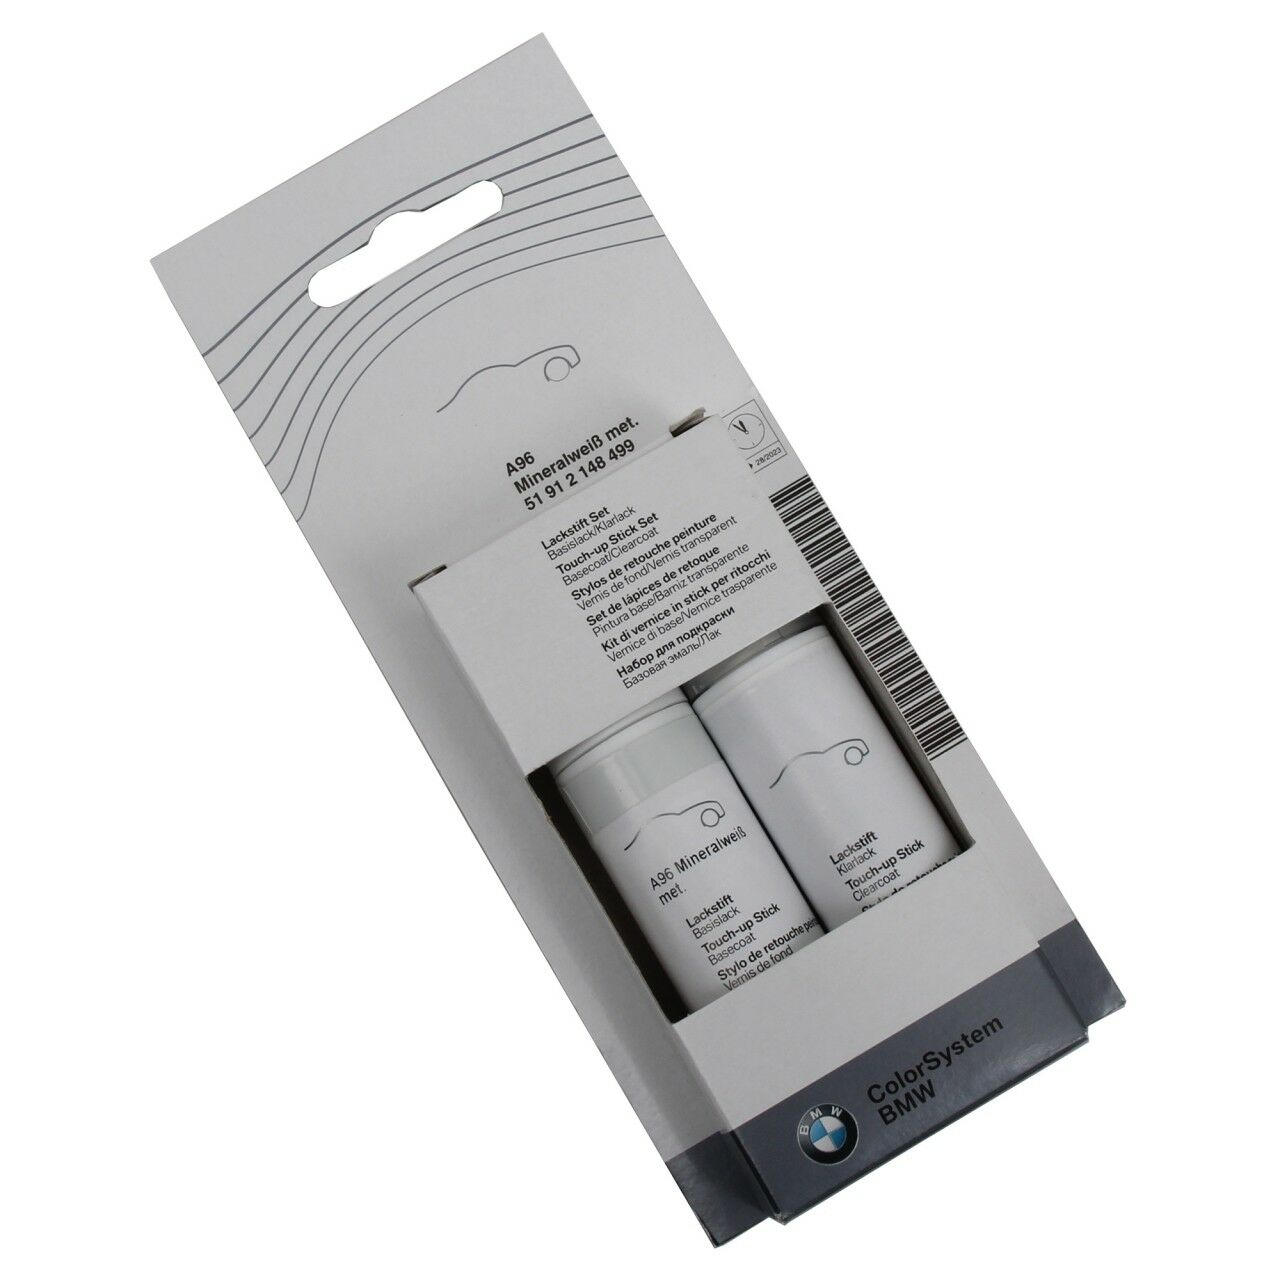 Volkswagen Touch Up Paint: Genuine Bmw Color System Touch Up Paint Stick Mineral